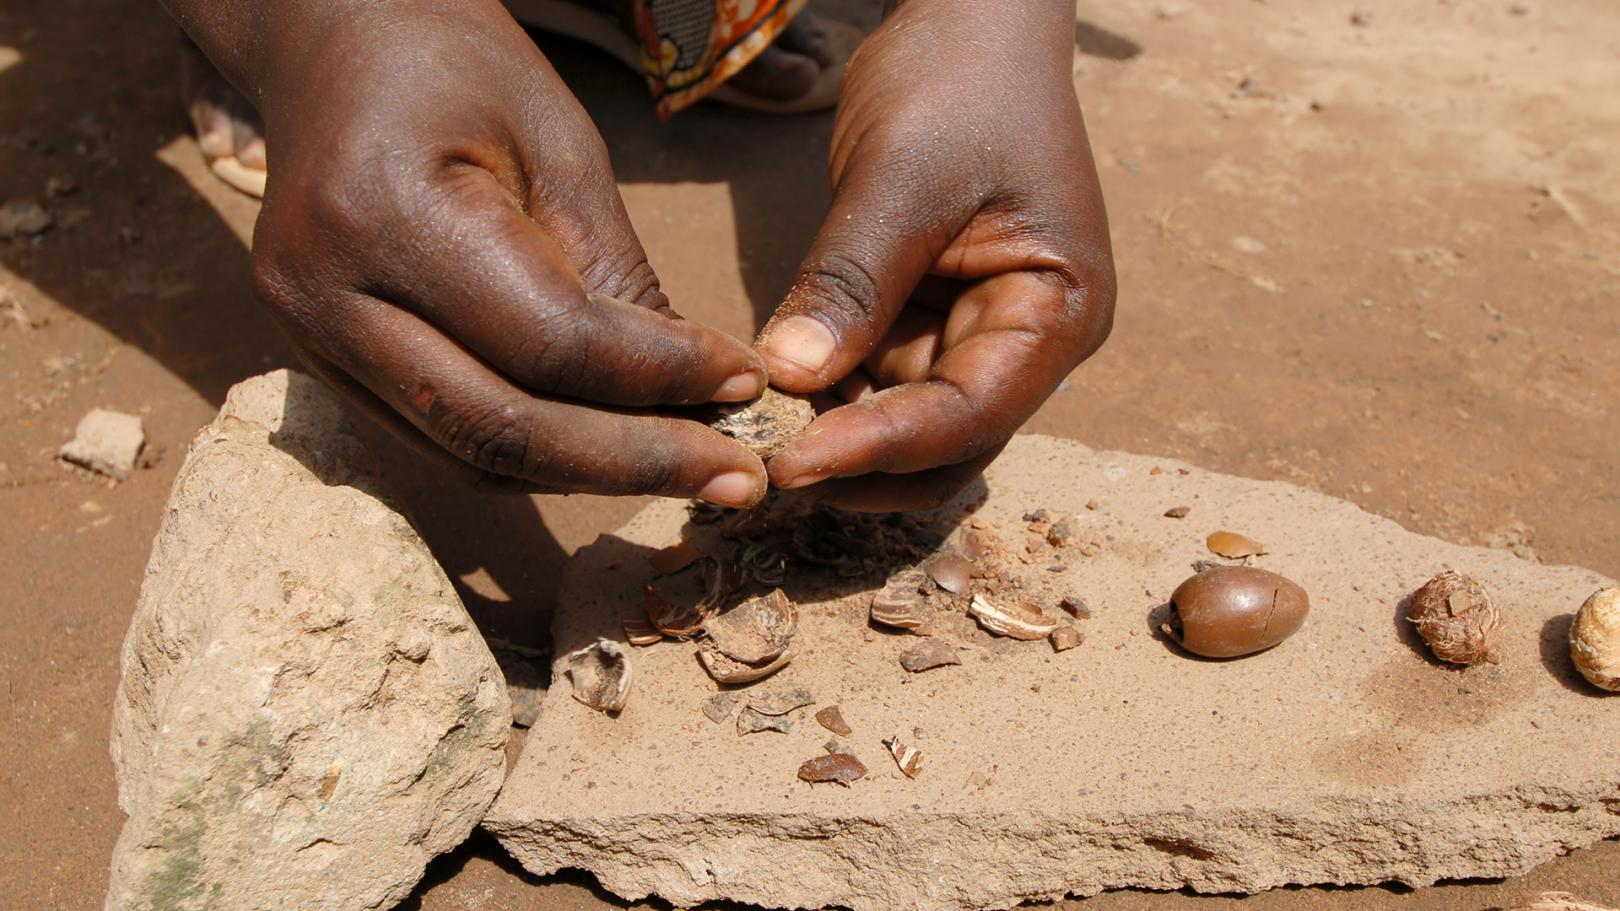 Two hands handling a shea nut